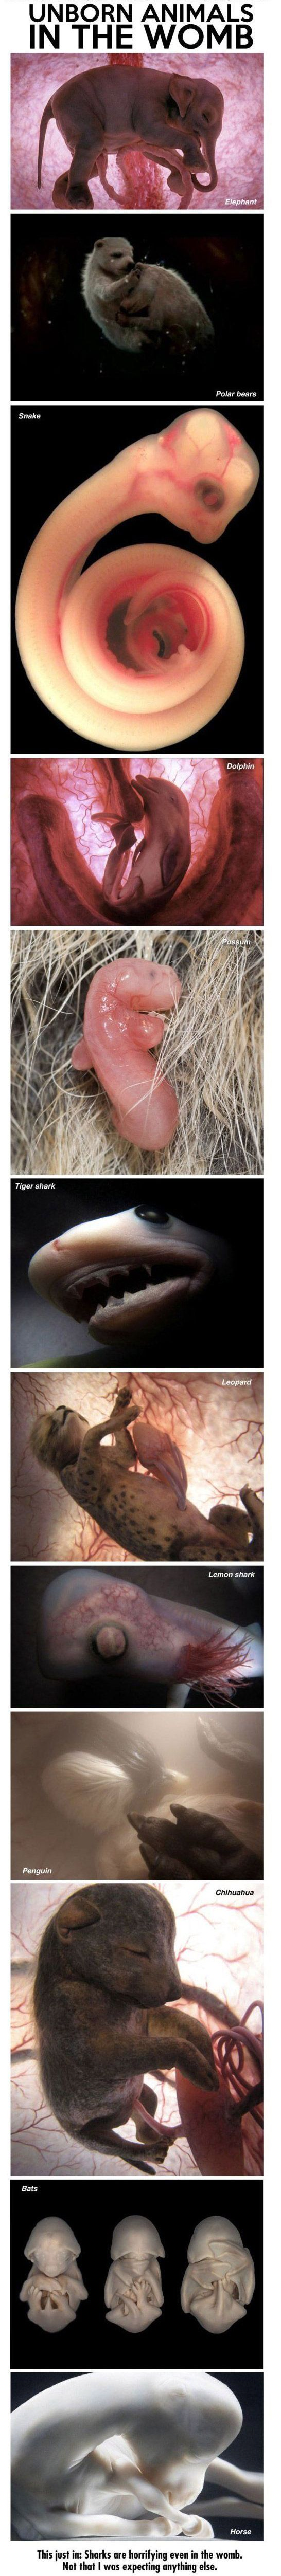 These images were created for a National Geographic special called In The Womb: Animals by Producer Peter Chinn. He used a combination of ultrasound technology, tiny cameras, and computer design to create these incredible images that replicate what fetal animals look like.